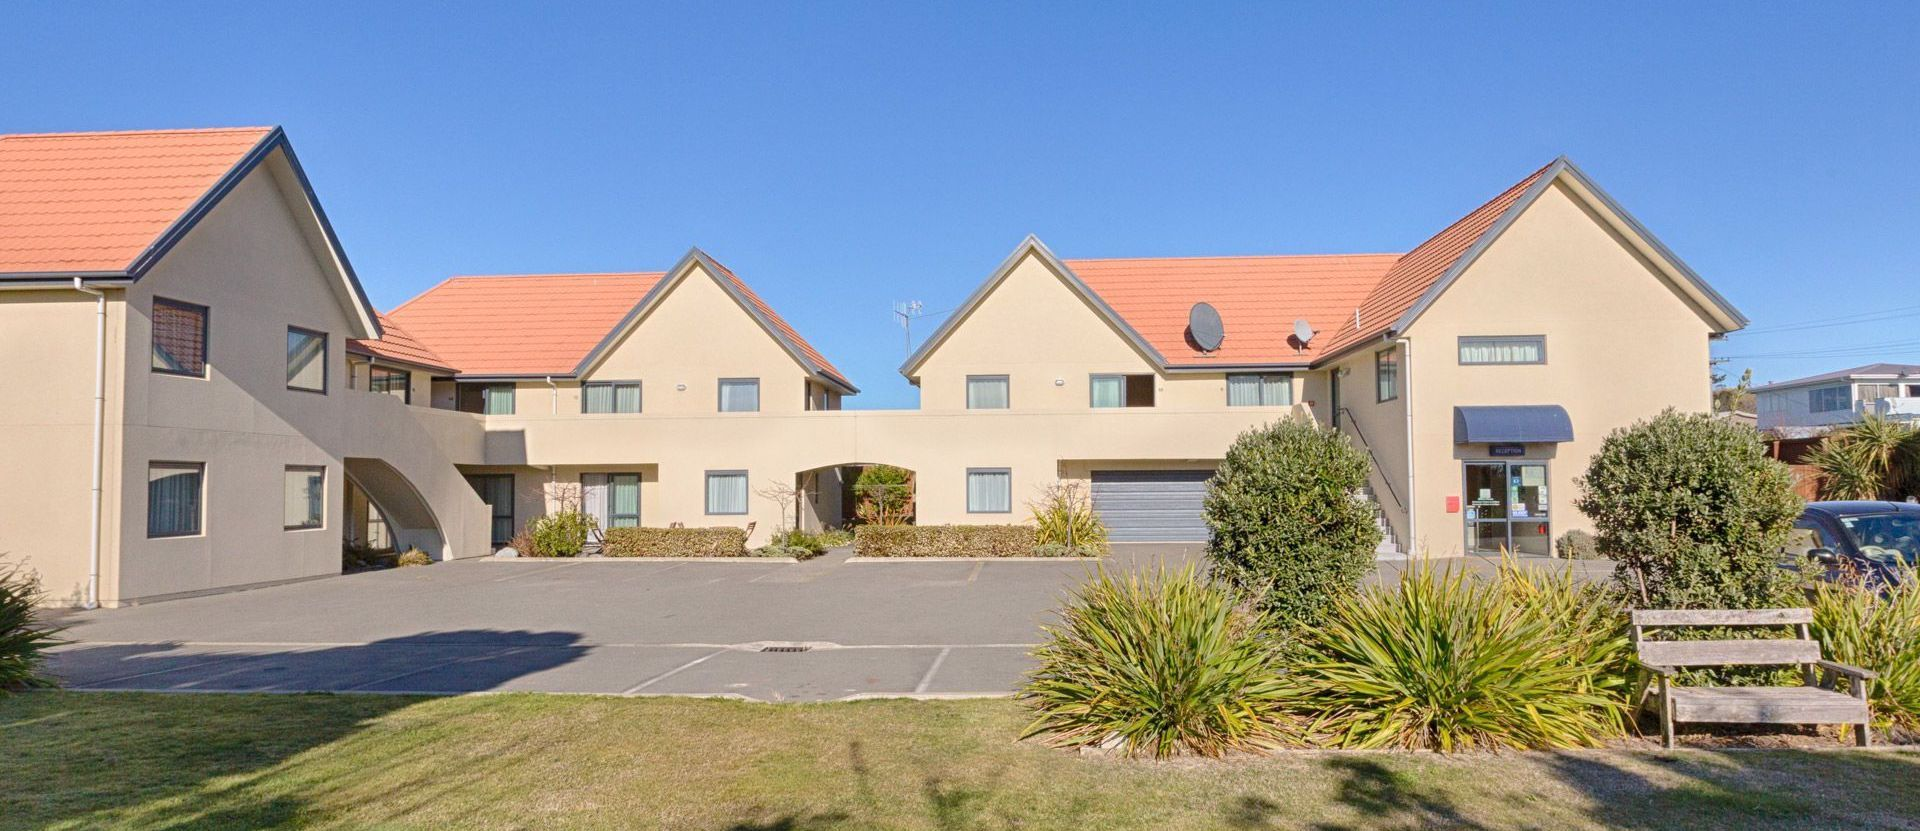 Kaikoura Accommodation | Bella Vista Motel Kaikoura